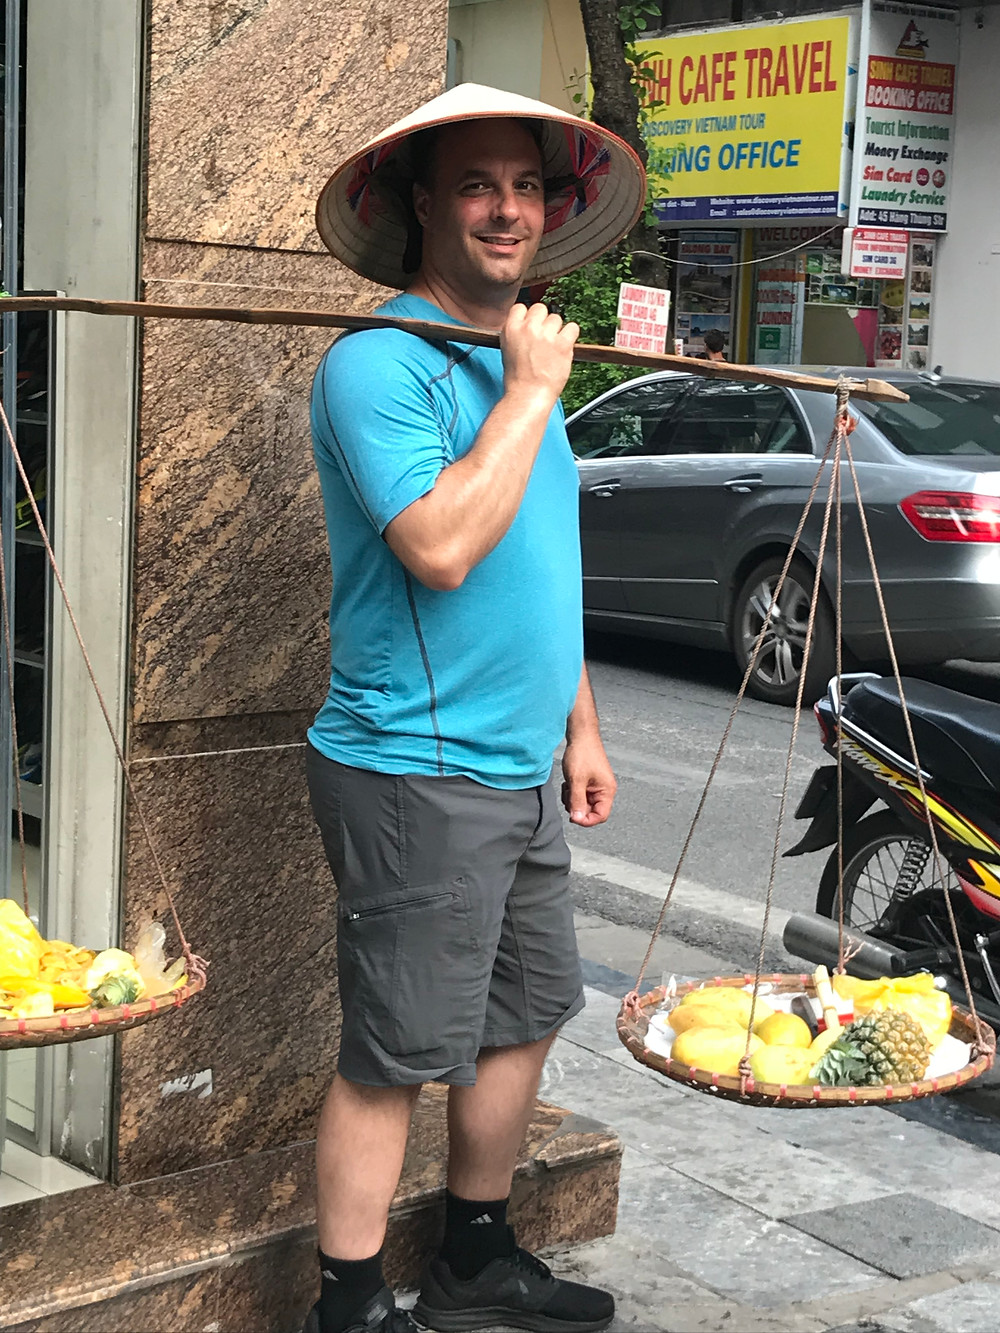 Newest local fruit seller at his pop-up shop